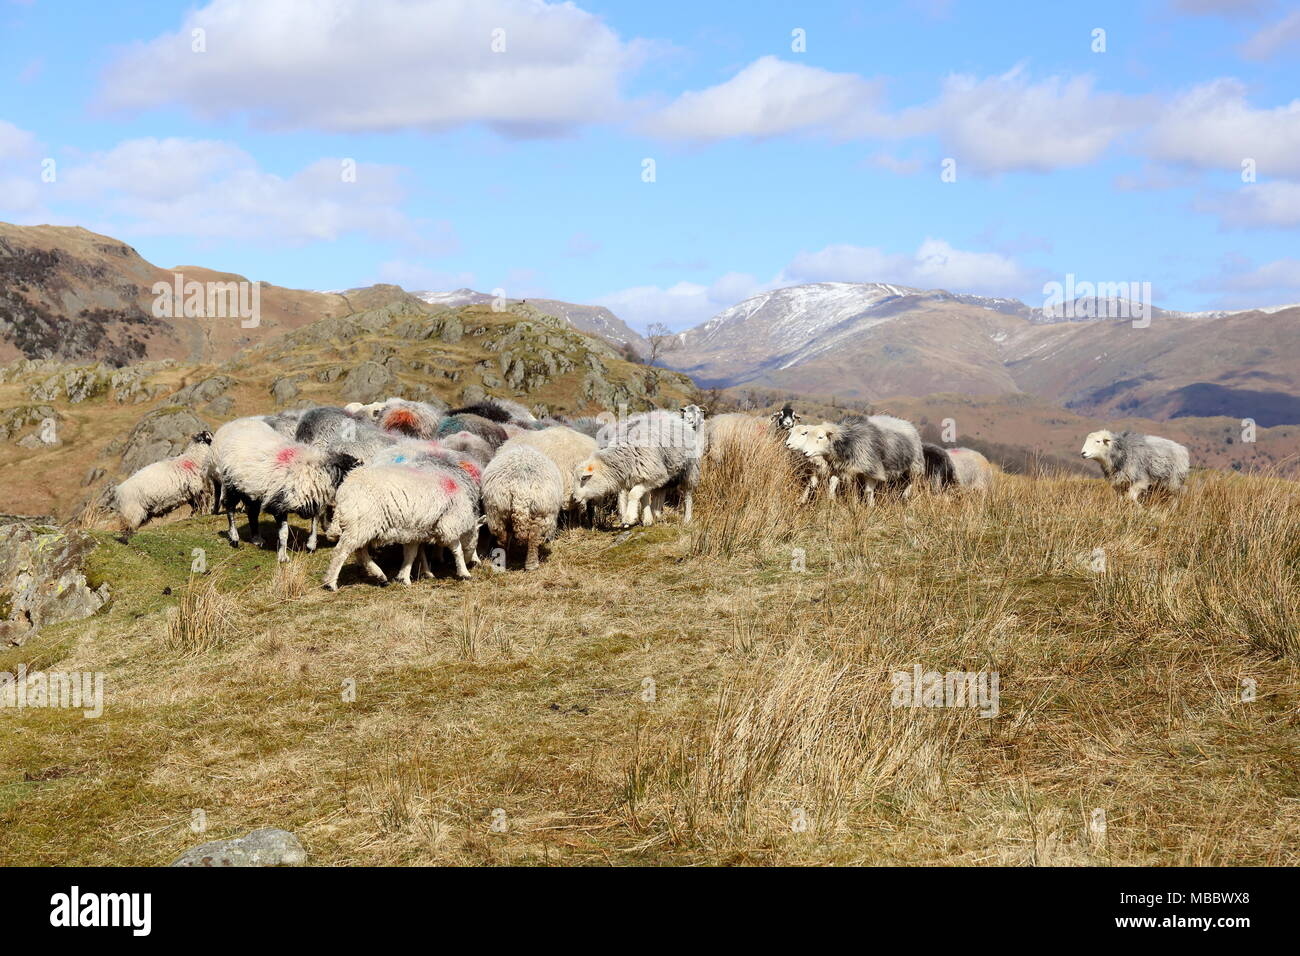 Feeding Frenzy. Sheep on the Cumbrian Fells gather to feed prior to being rounded up. Snow is on the higher Helvellyn range in the distance. - Stock Image